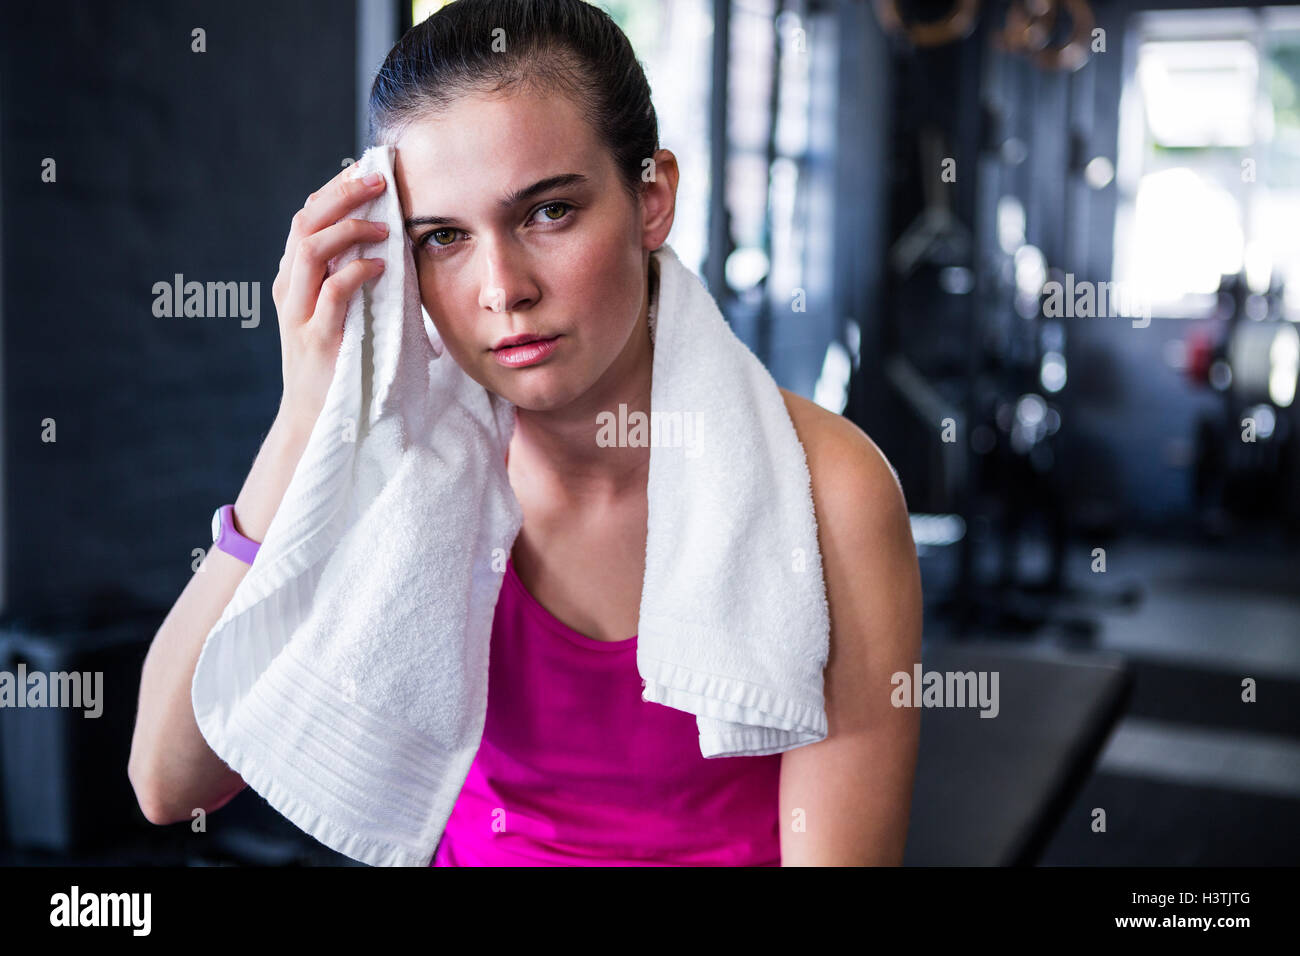 Portrait of young female athlete wiping sweat Stock Photo